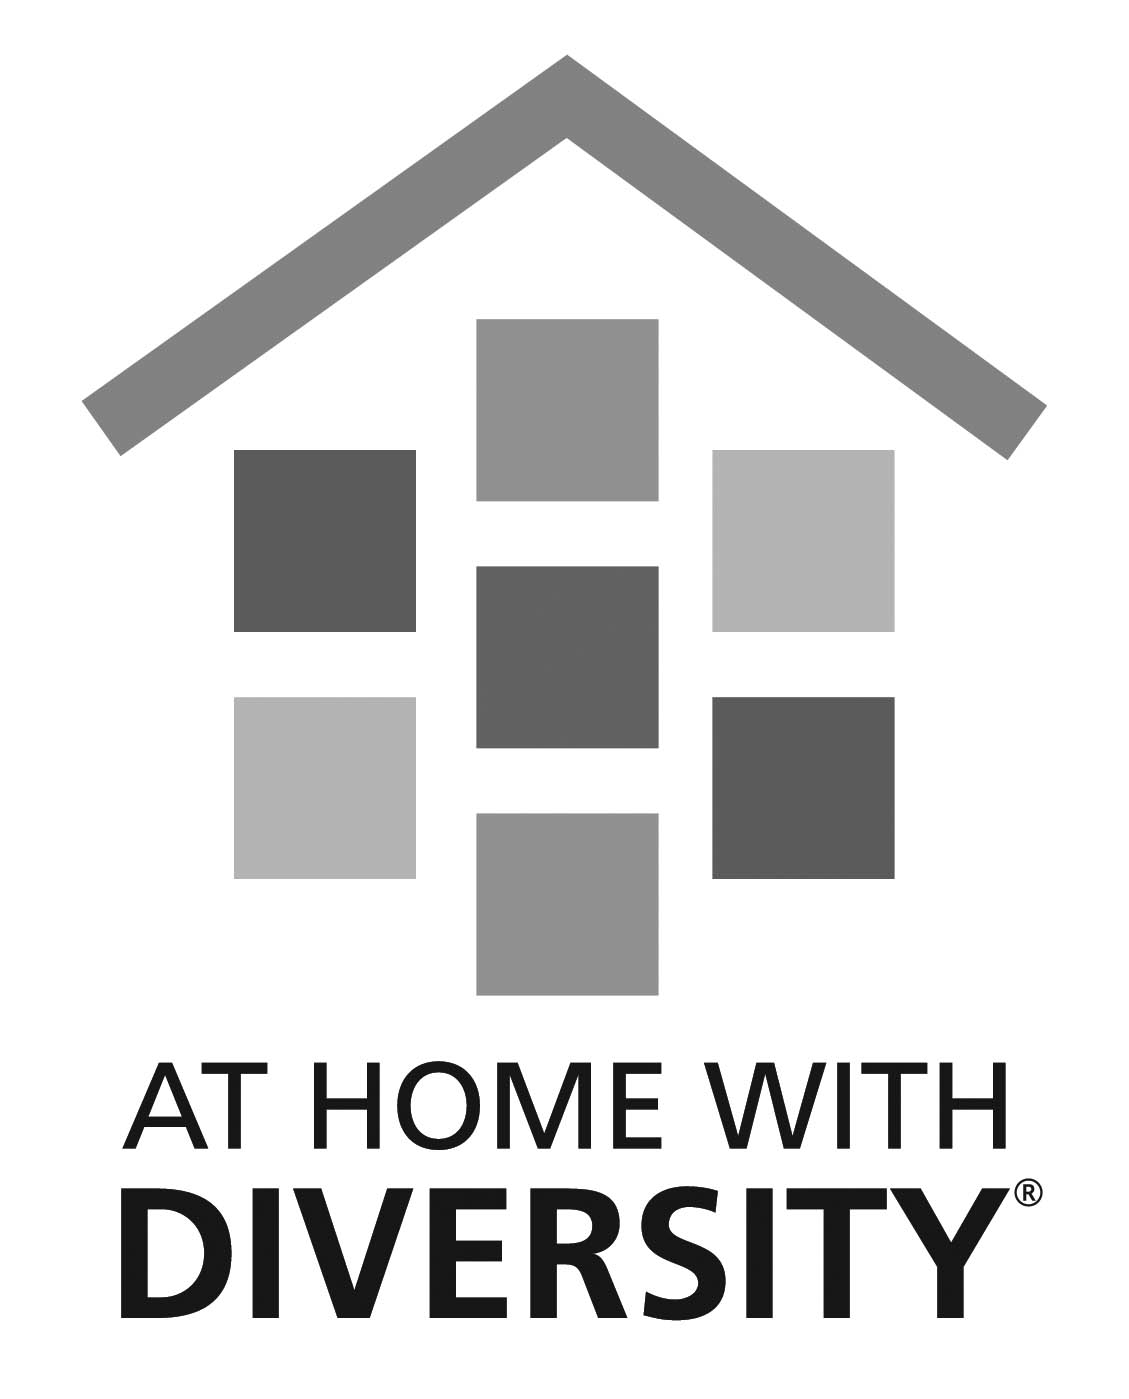 At Home With Diversity logo.